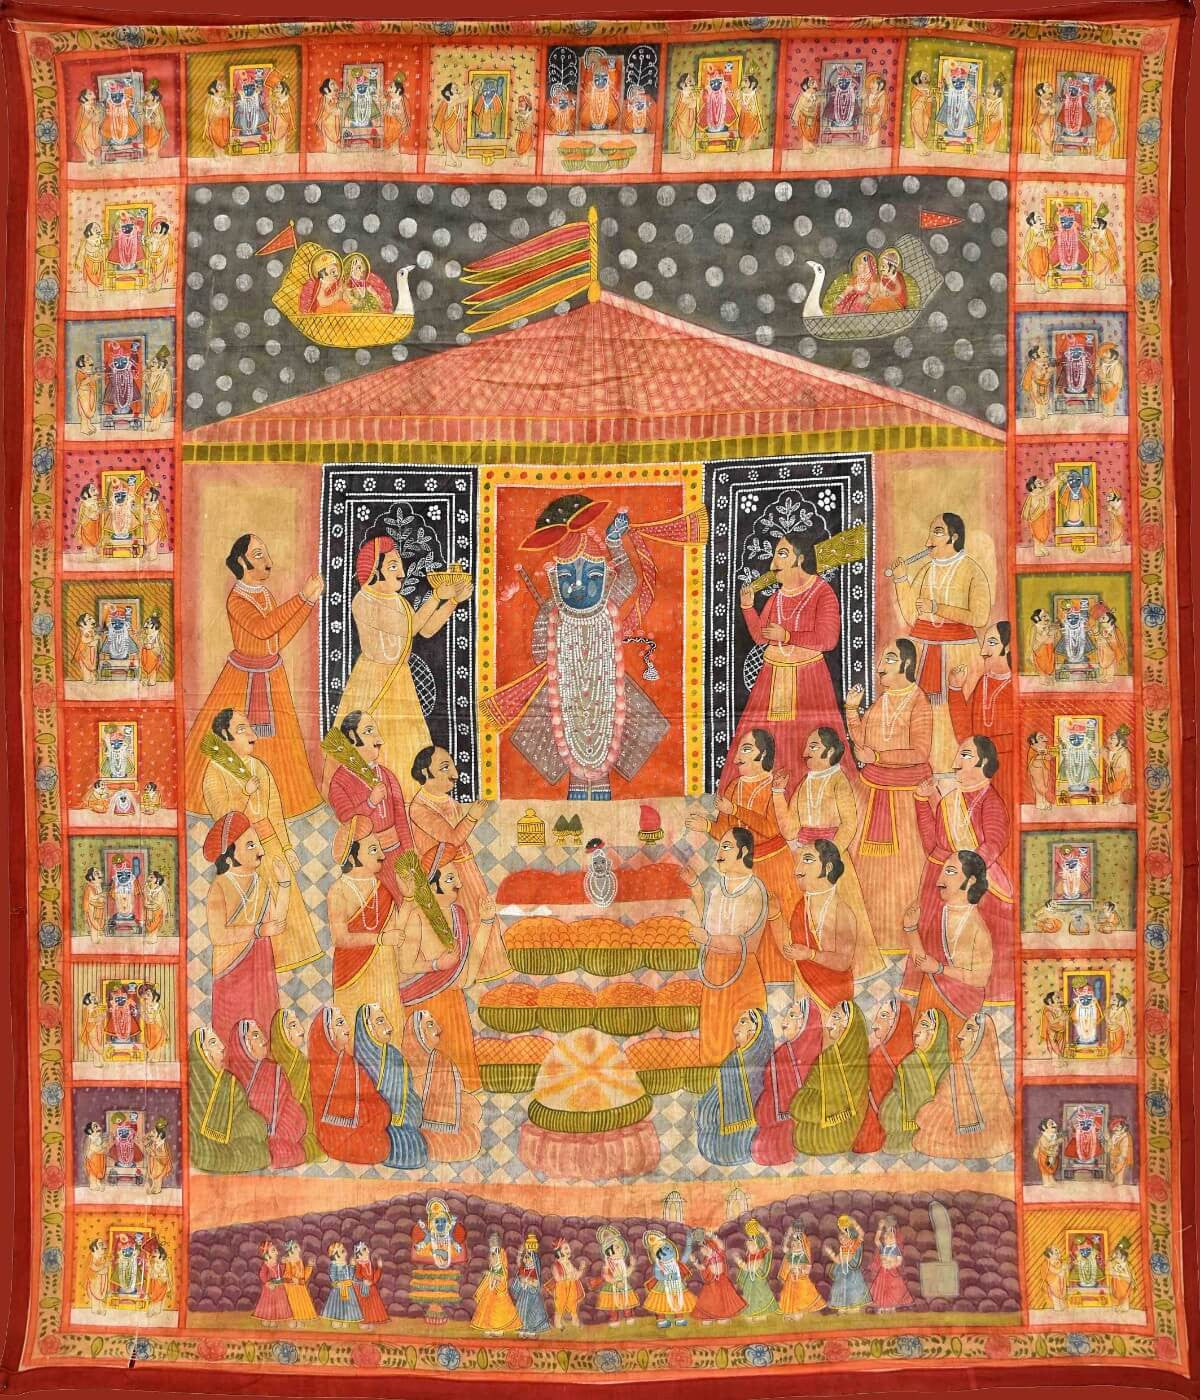 Indian Miniature Paintings — Indian Folk and Tribal Art | Buy Posters, Frames, Canvas, Digital Art & Large Size Prints